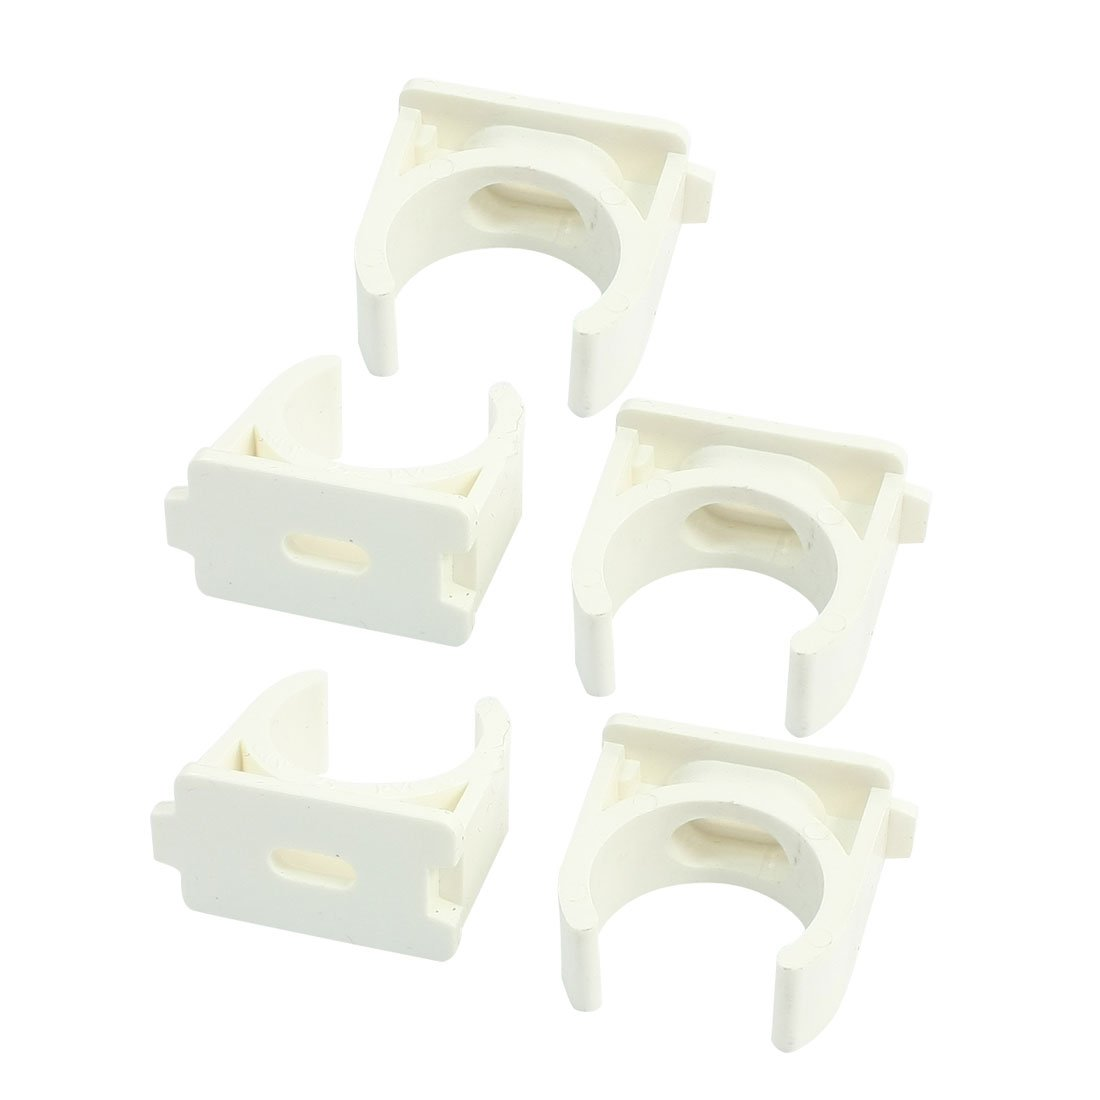 uxcell PVC Water Pipe Clamps Clips, 3/4